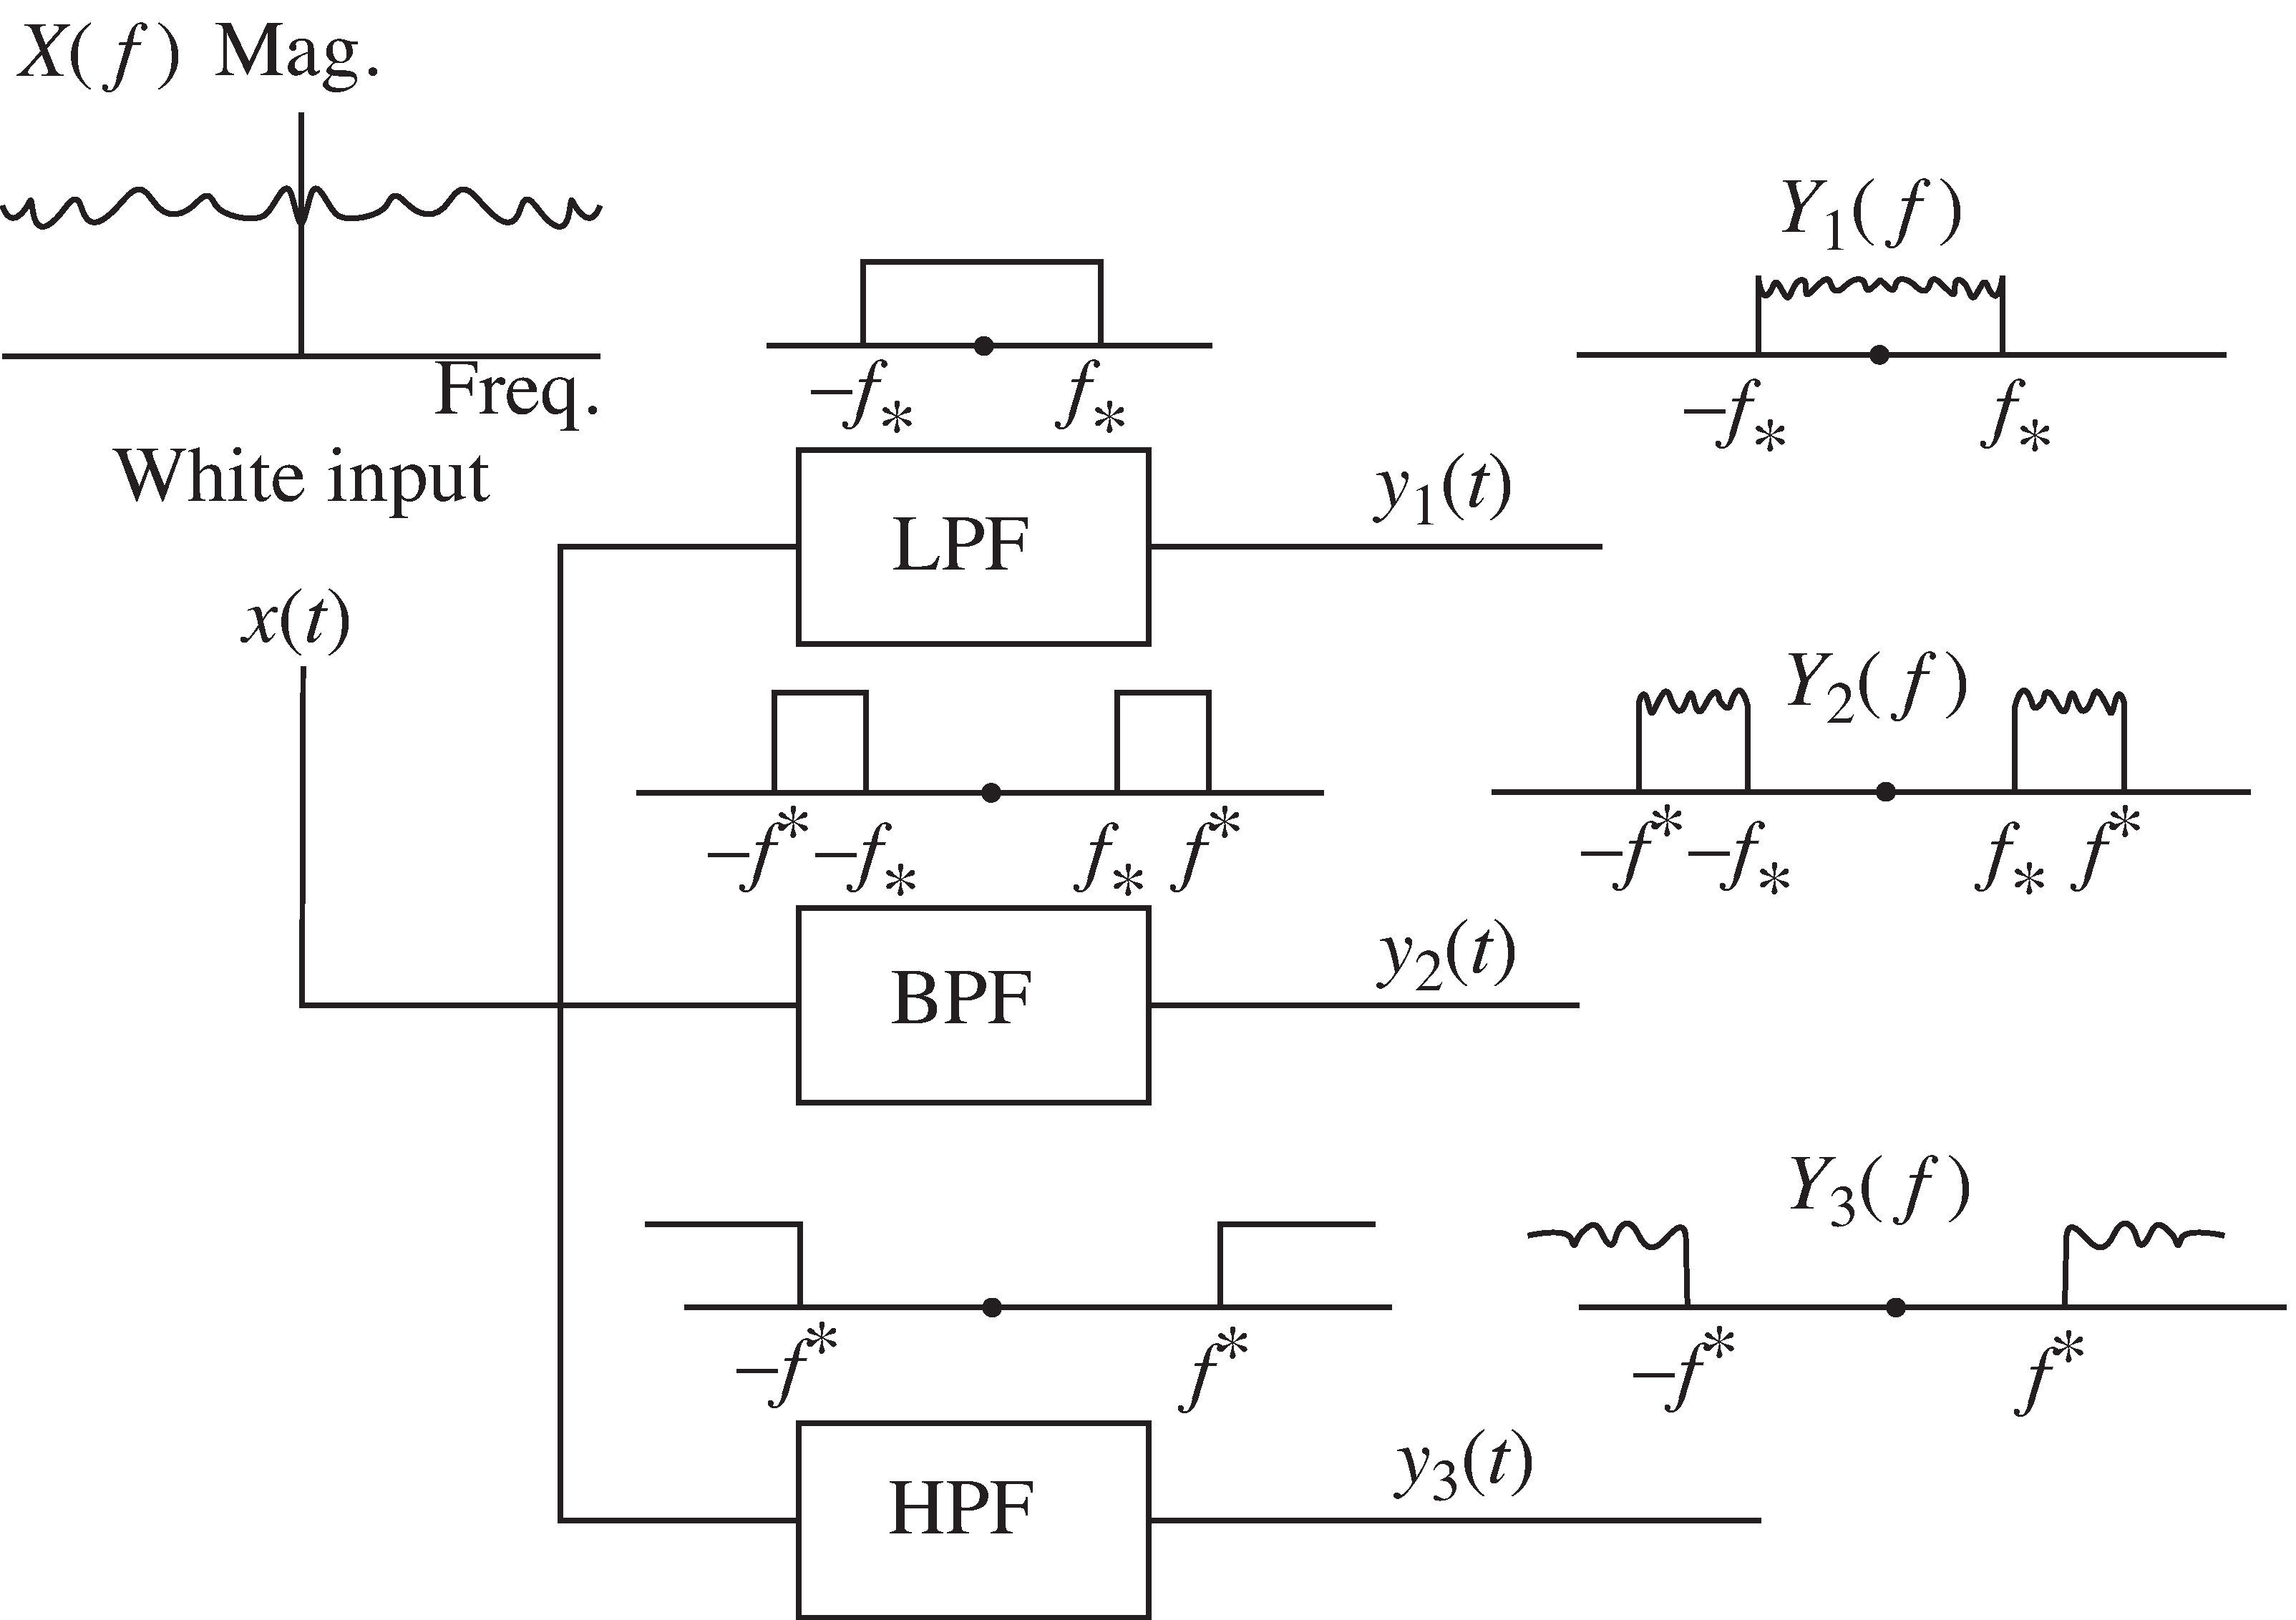 The Six Elements All Pass Filters A White Signal Containing Frequencies Is Passed Through Lowpass Filter Lpf